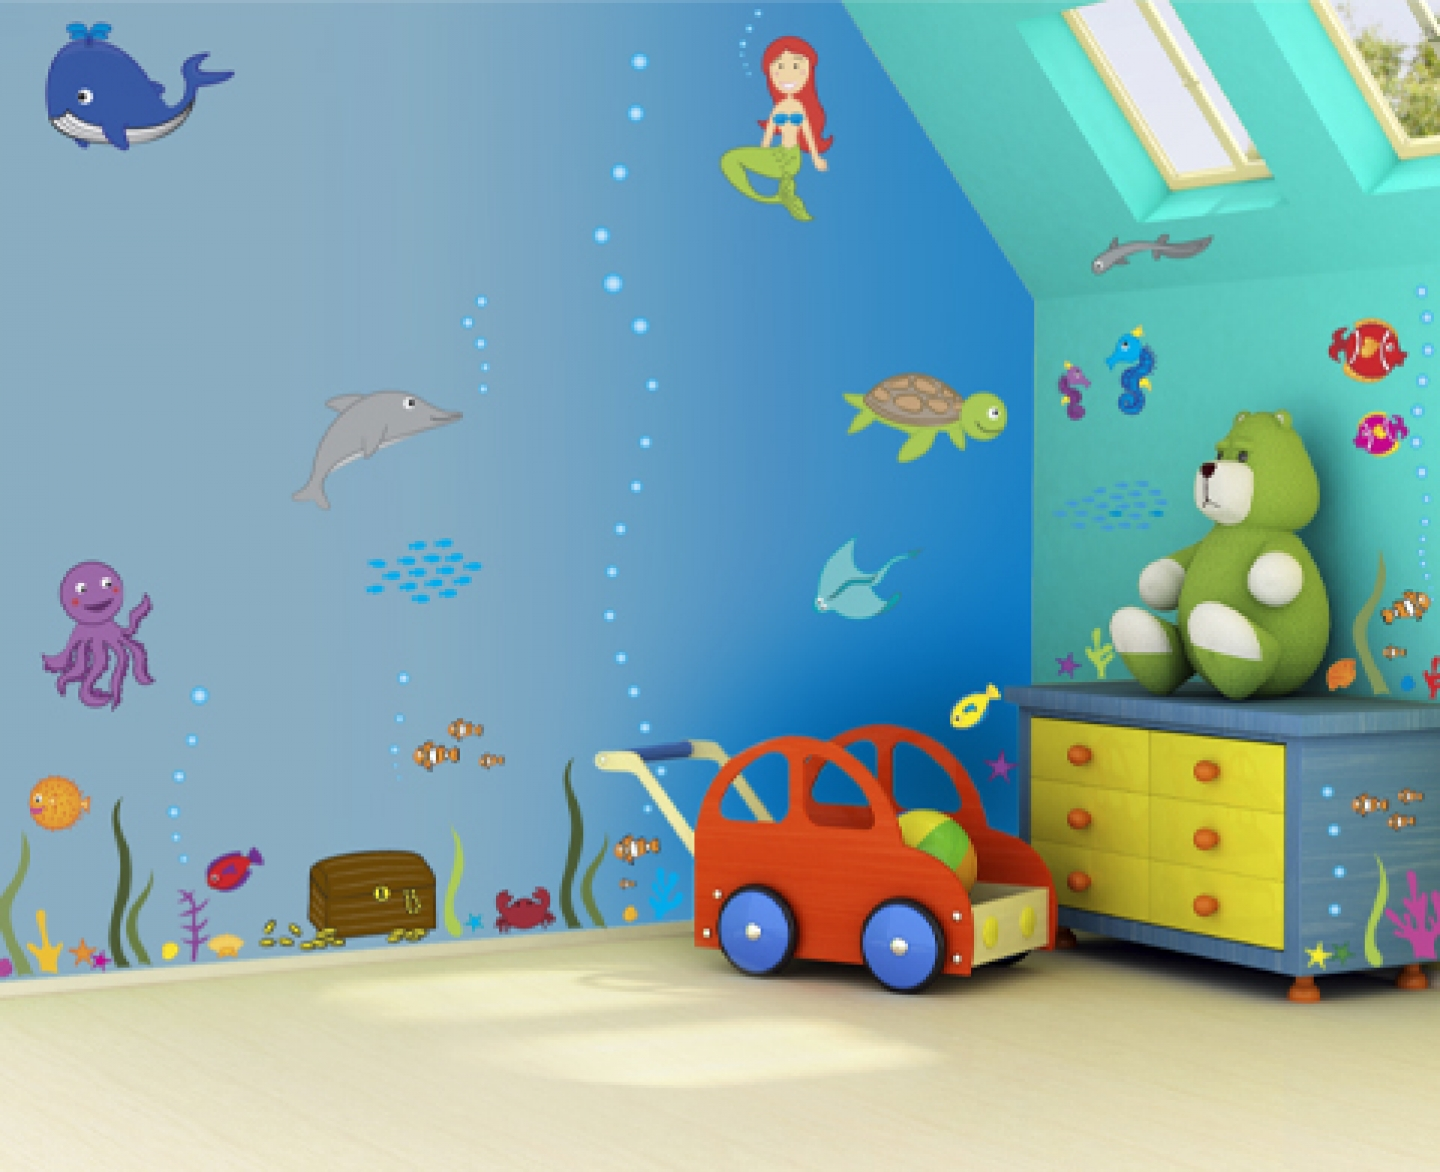 Wall Art Décor Ideas For Kids Room My Decorative